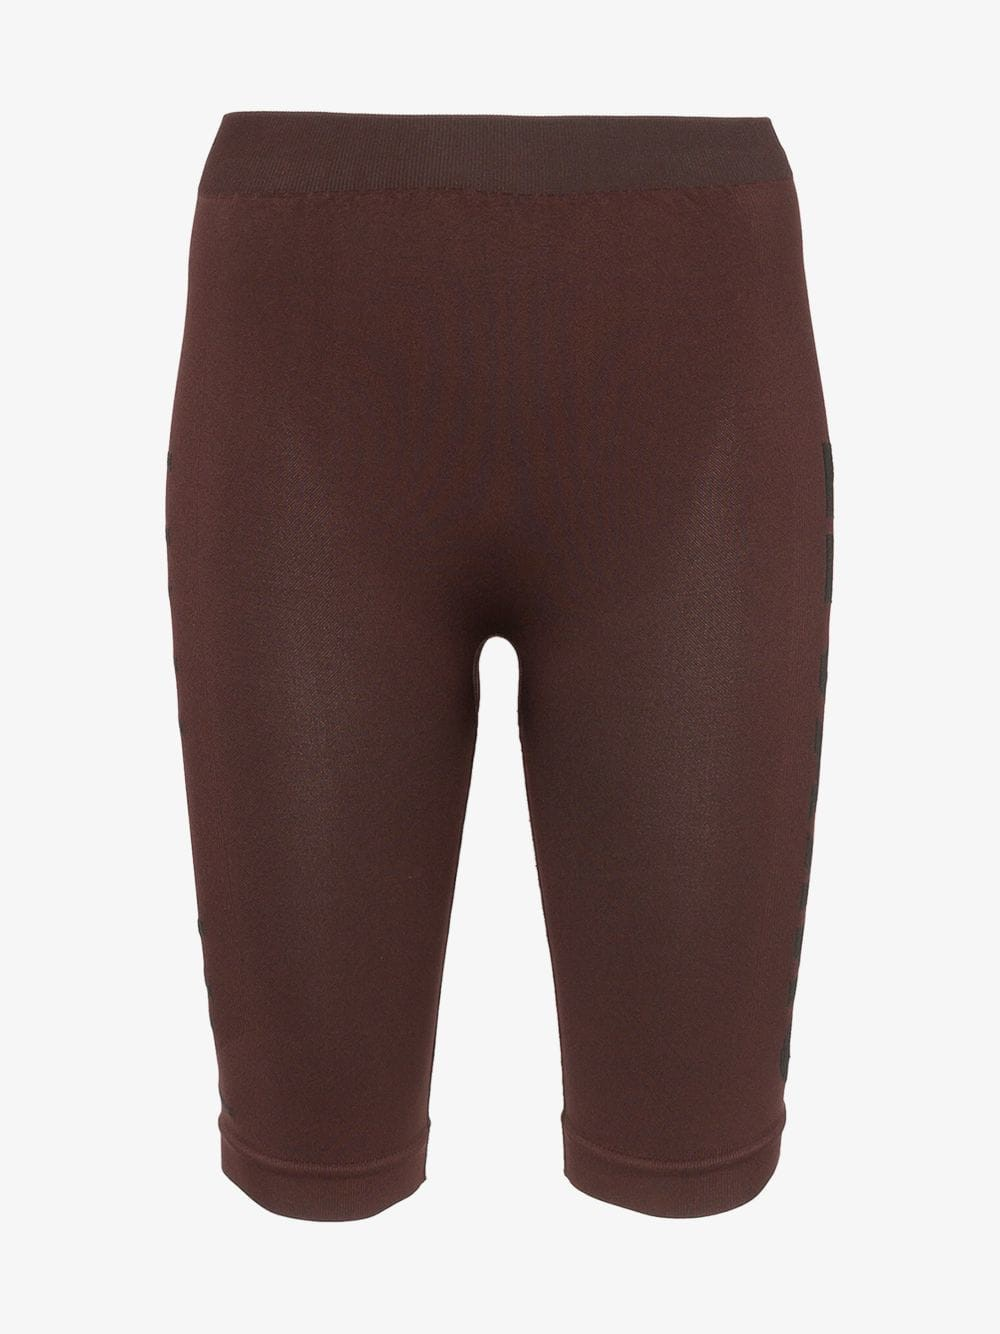 Unravel Project seamless knee-length cycling shorts in brown